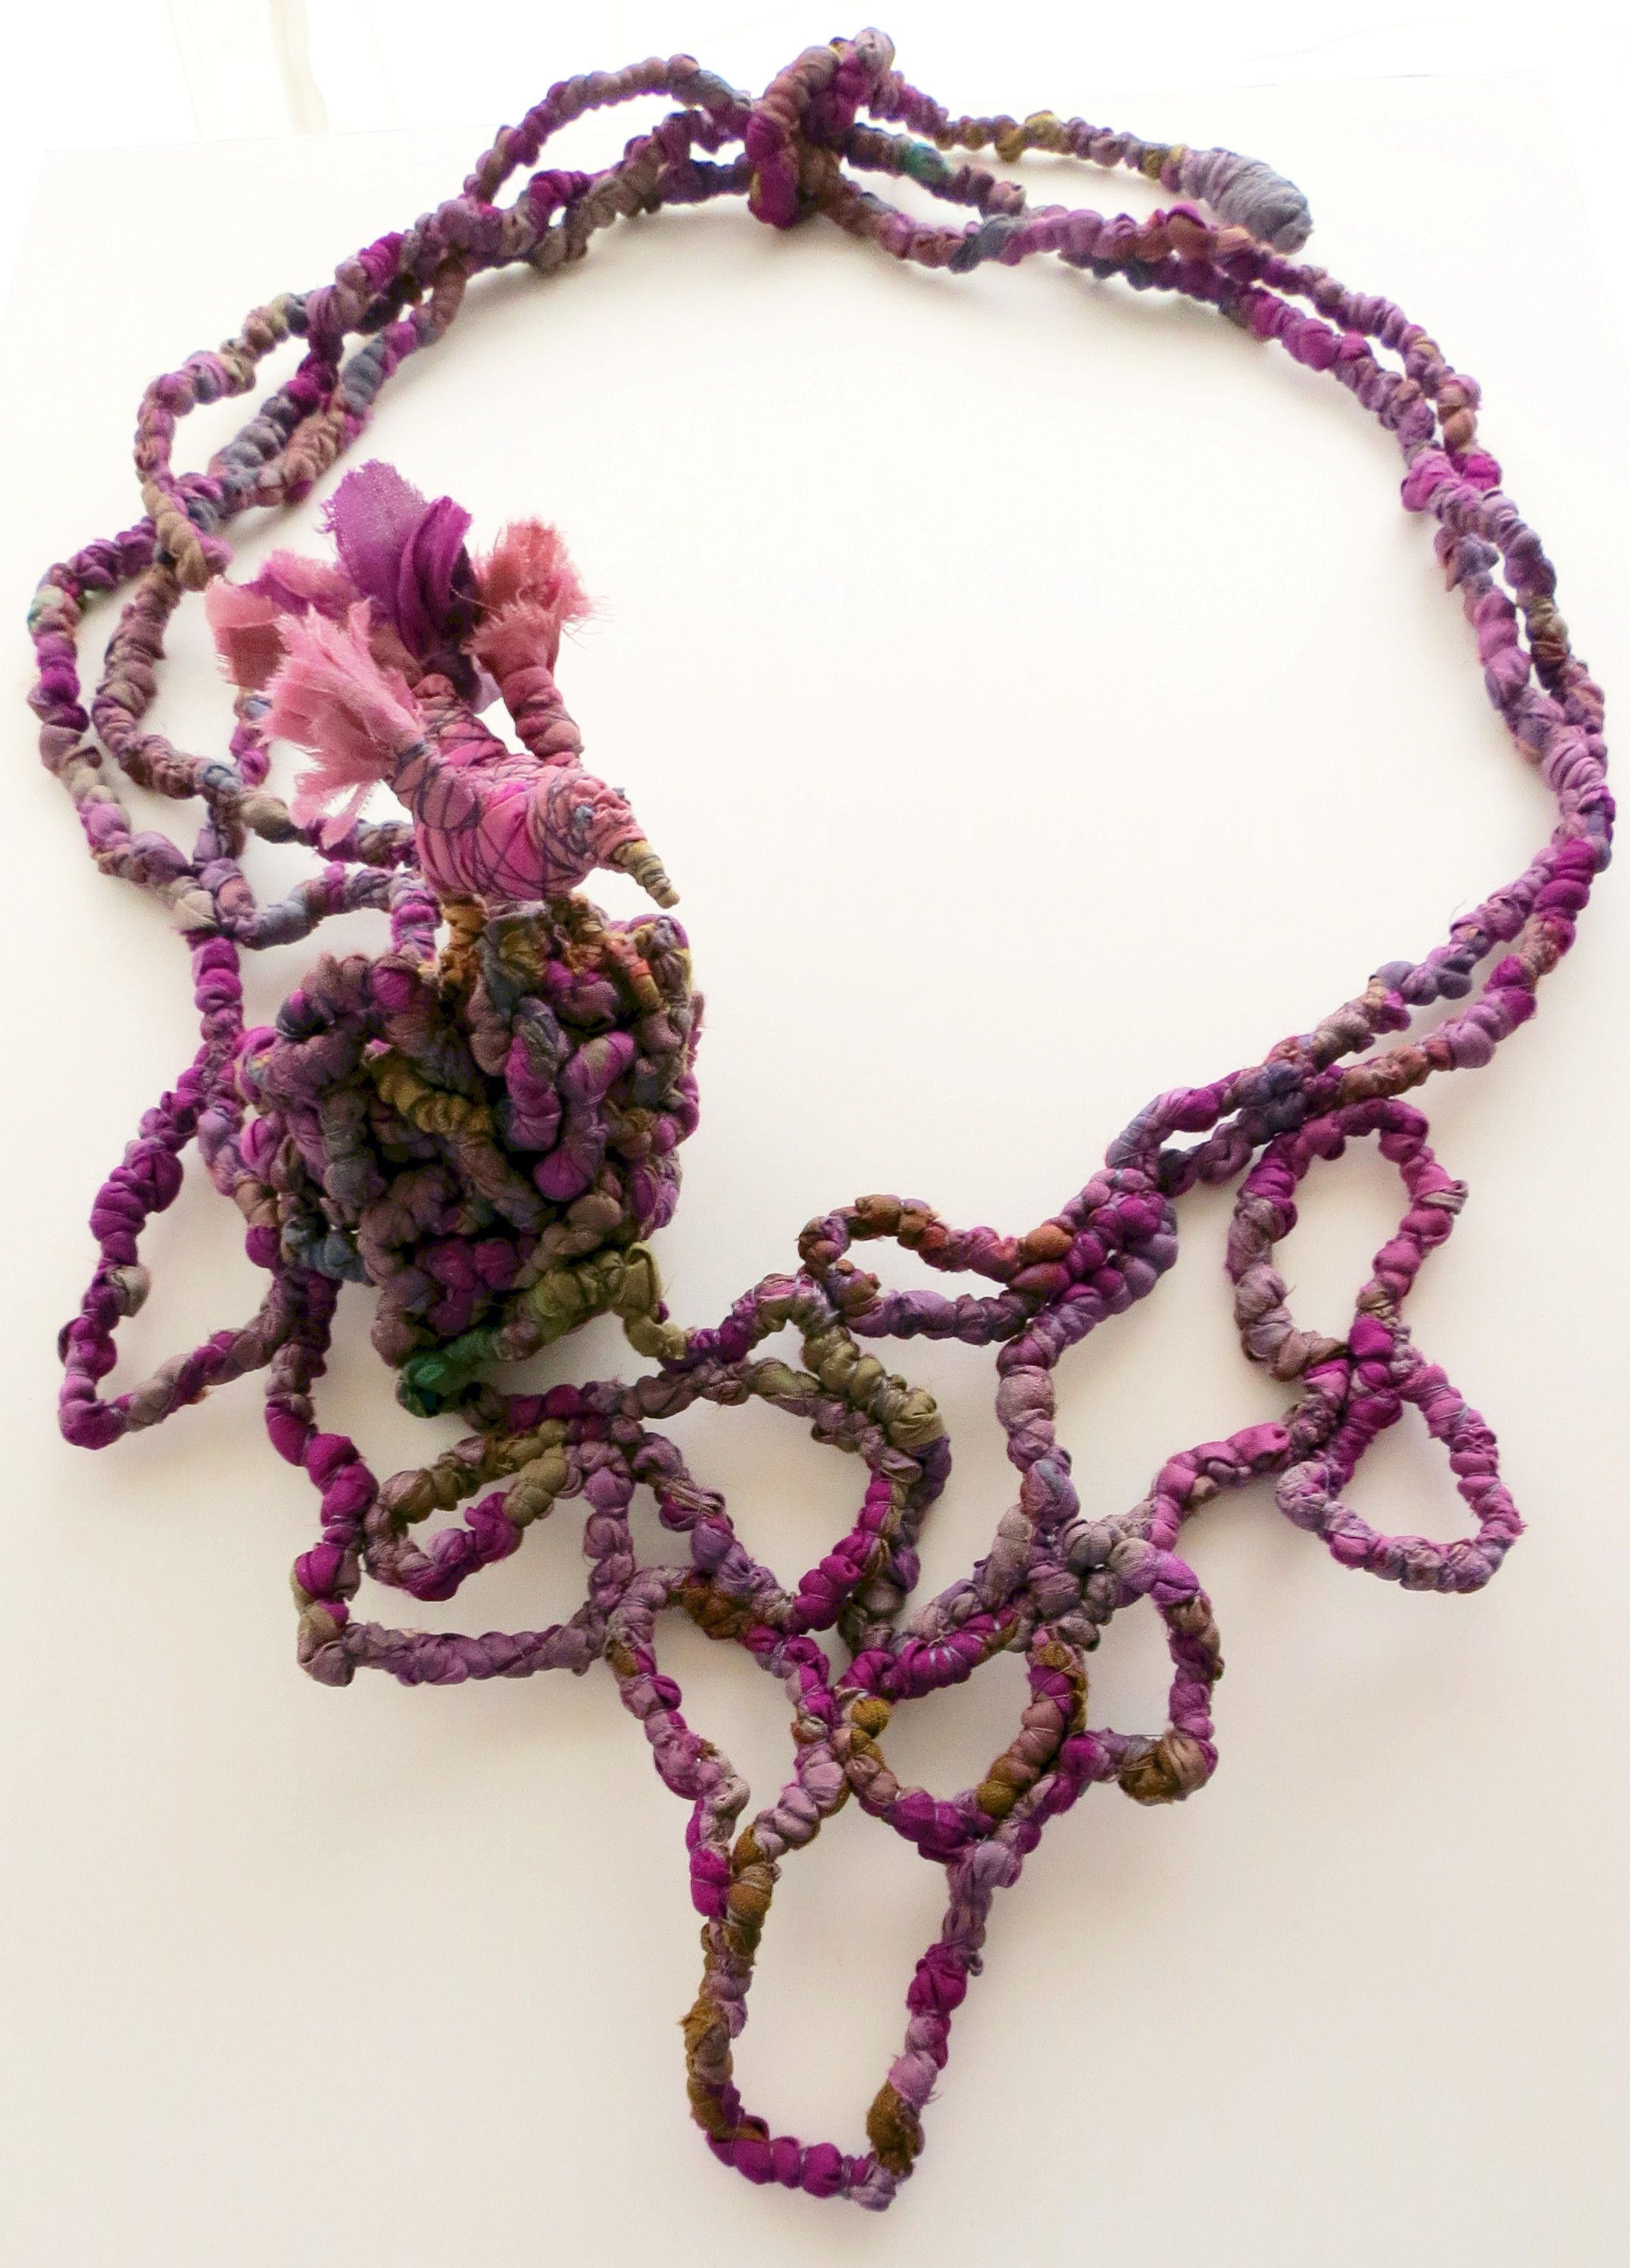 Leaving the Nest - Francesca Cecchini (2014), necklace // Materials: repurposed sari silk, silk thread, copper wire.